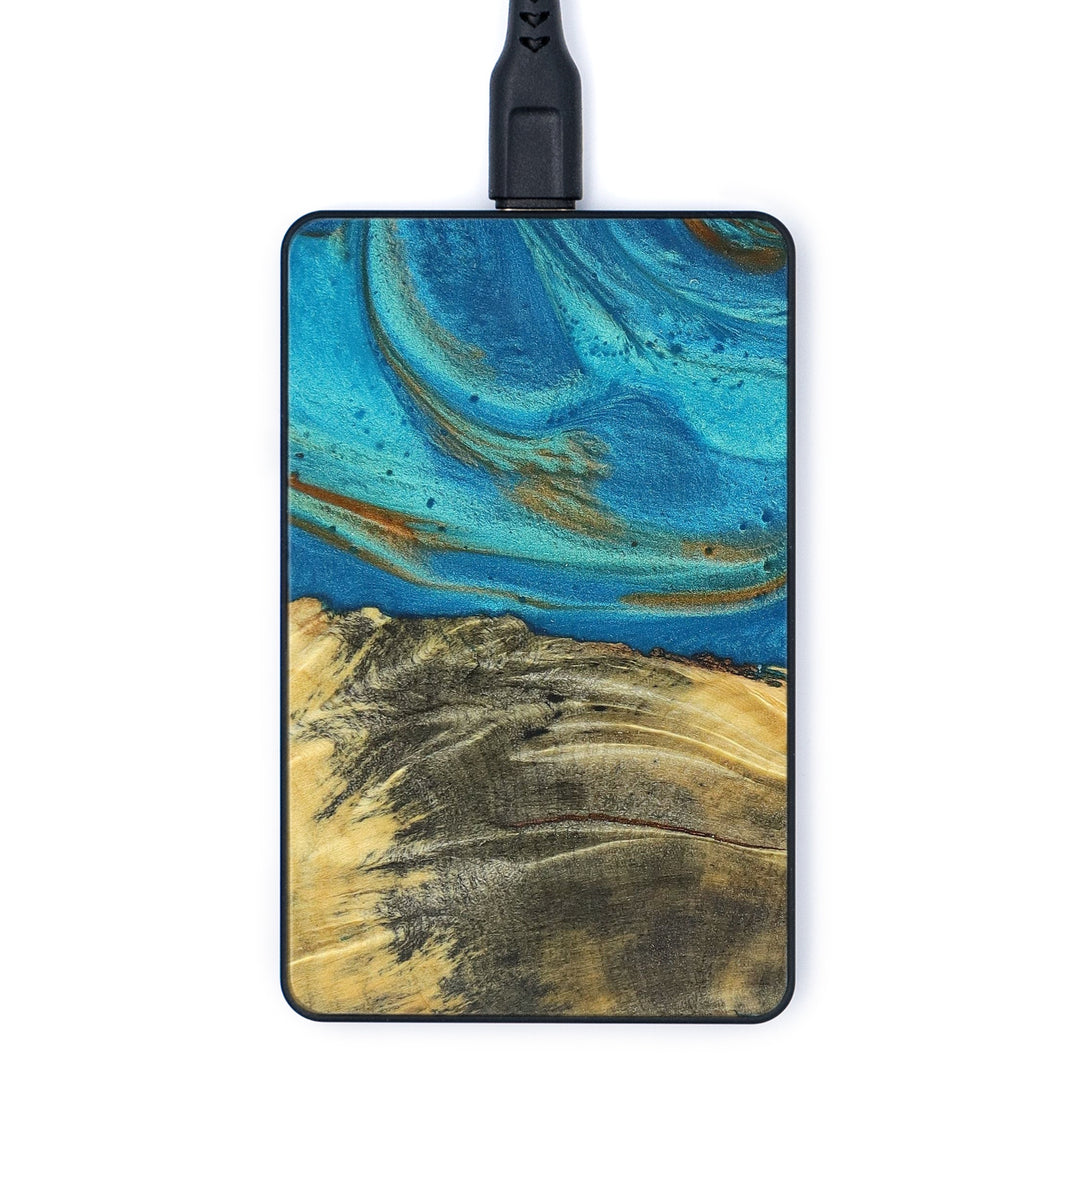 Thin Wood+Resin Wireless Charger - Janene (Teal & Gold, 376666)